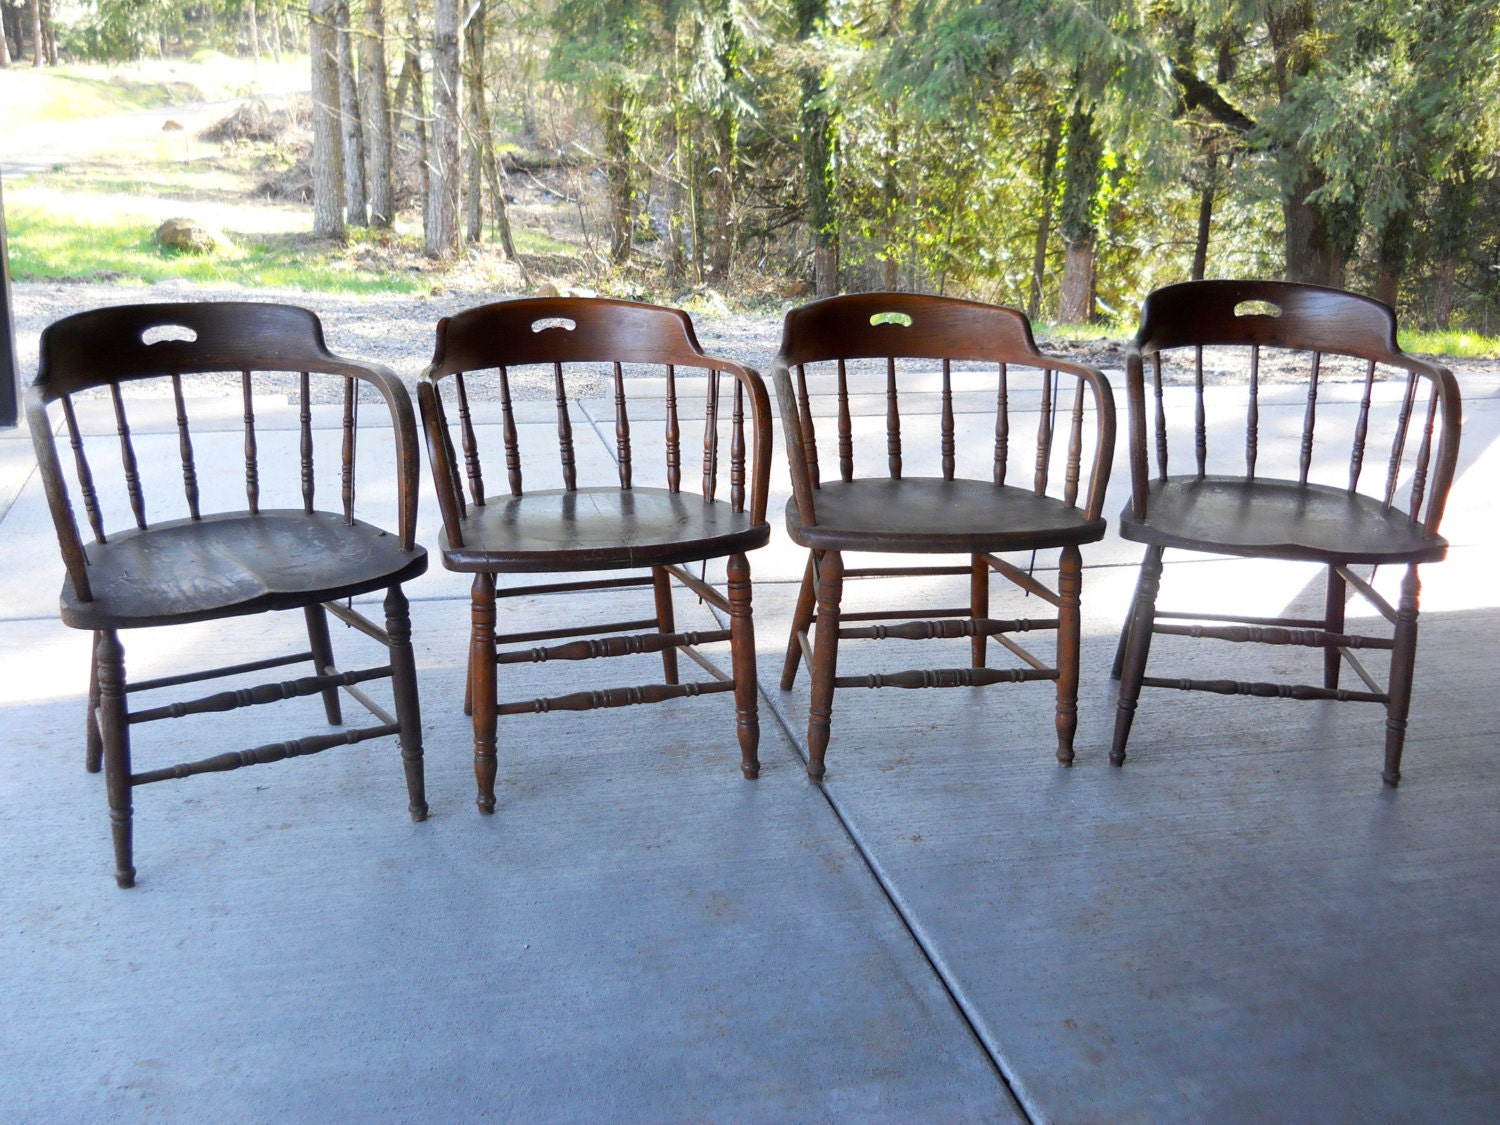 Armless bankers chair - Rare 1900 Tavern Heywood Wakefield Oak Chair Set Rustic Farmhouse Antique Western Bankers Pub